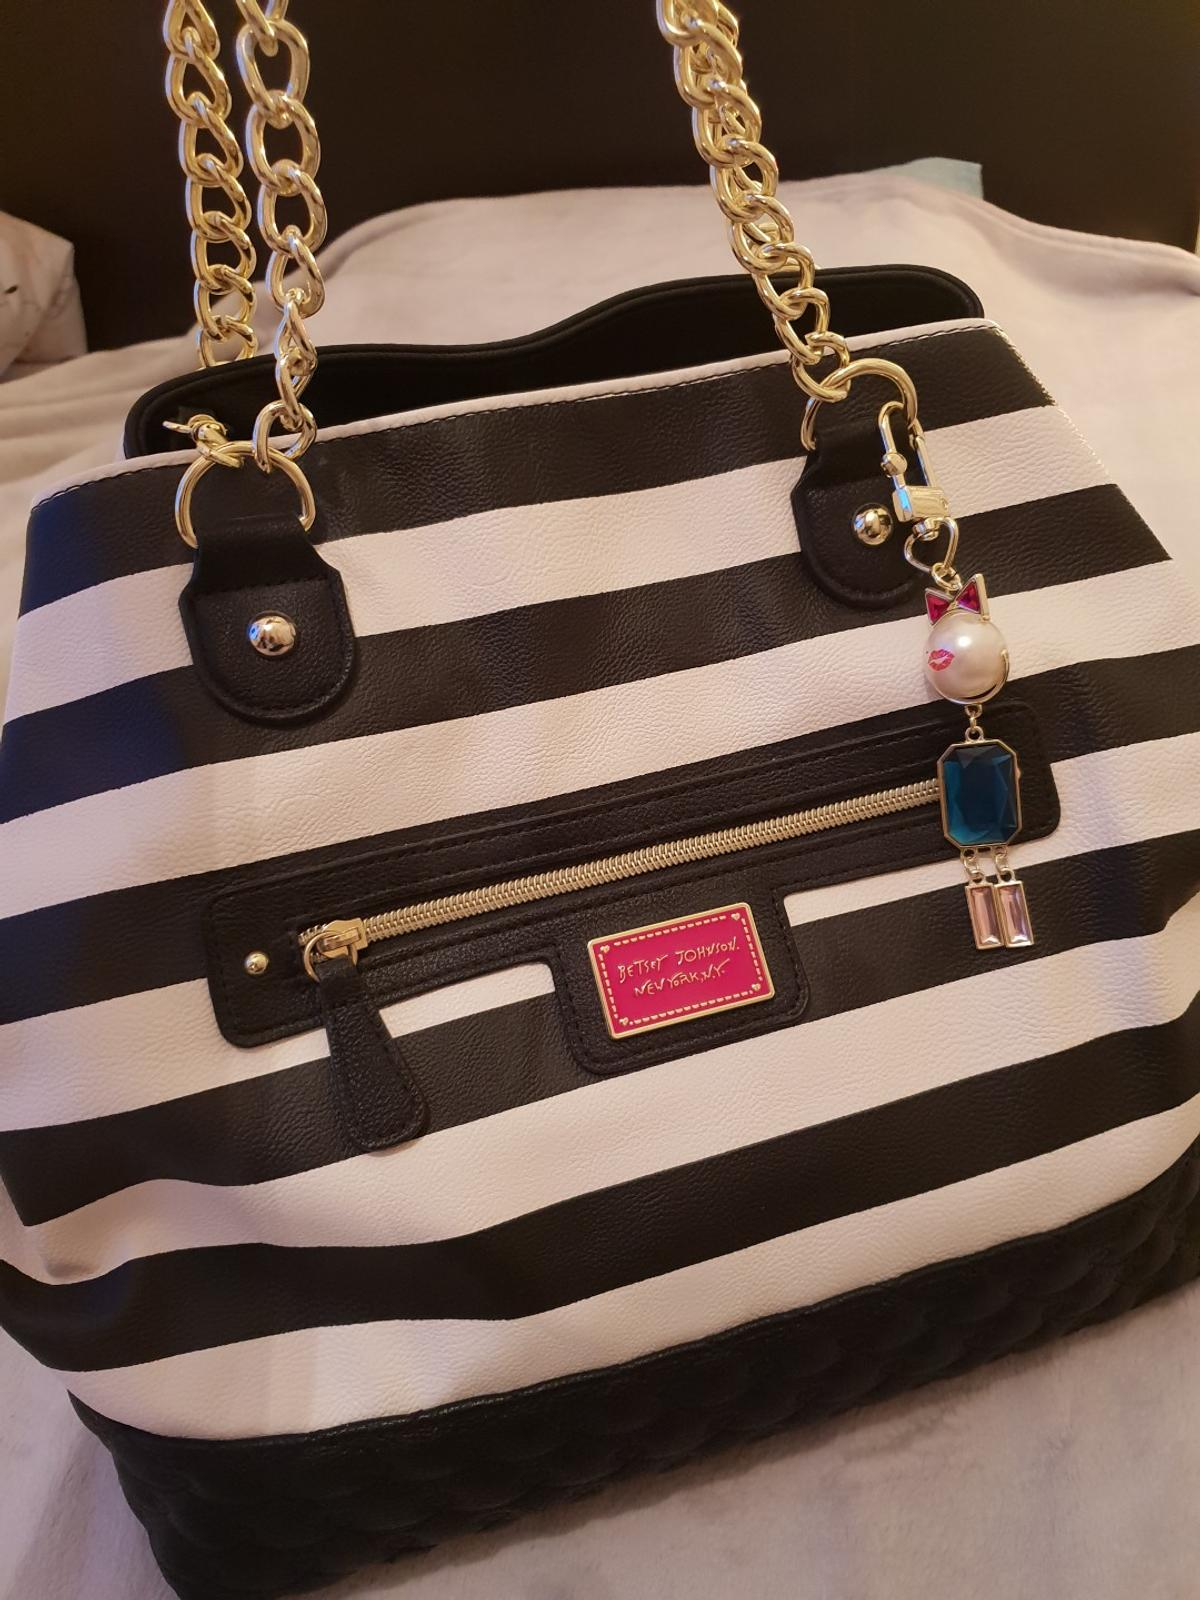 """Large Betsey Johnson Bag With cat charm & make-up purse. Brand new. Never used. Betsey Johnson XL Black & White Stripe Tote Bag Bag is 13.5"""" tall, 13"""" wide, 8"""" deep Zip and slip pockets inside. Made of polyurethane.  PLEASE CONTACT ME IF YOU HAVE ANY QUESTIONS"""